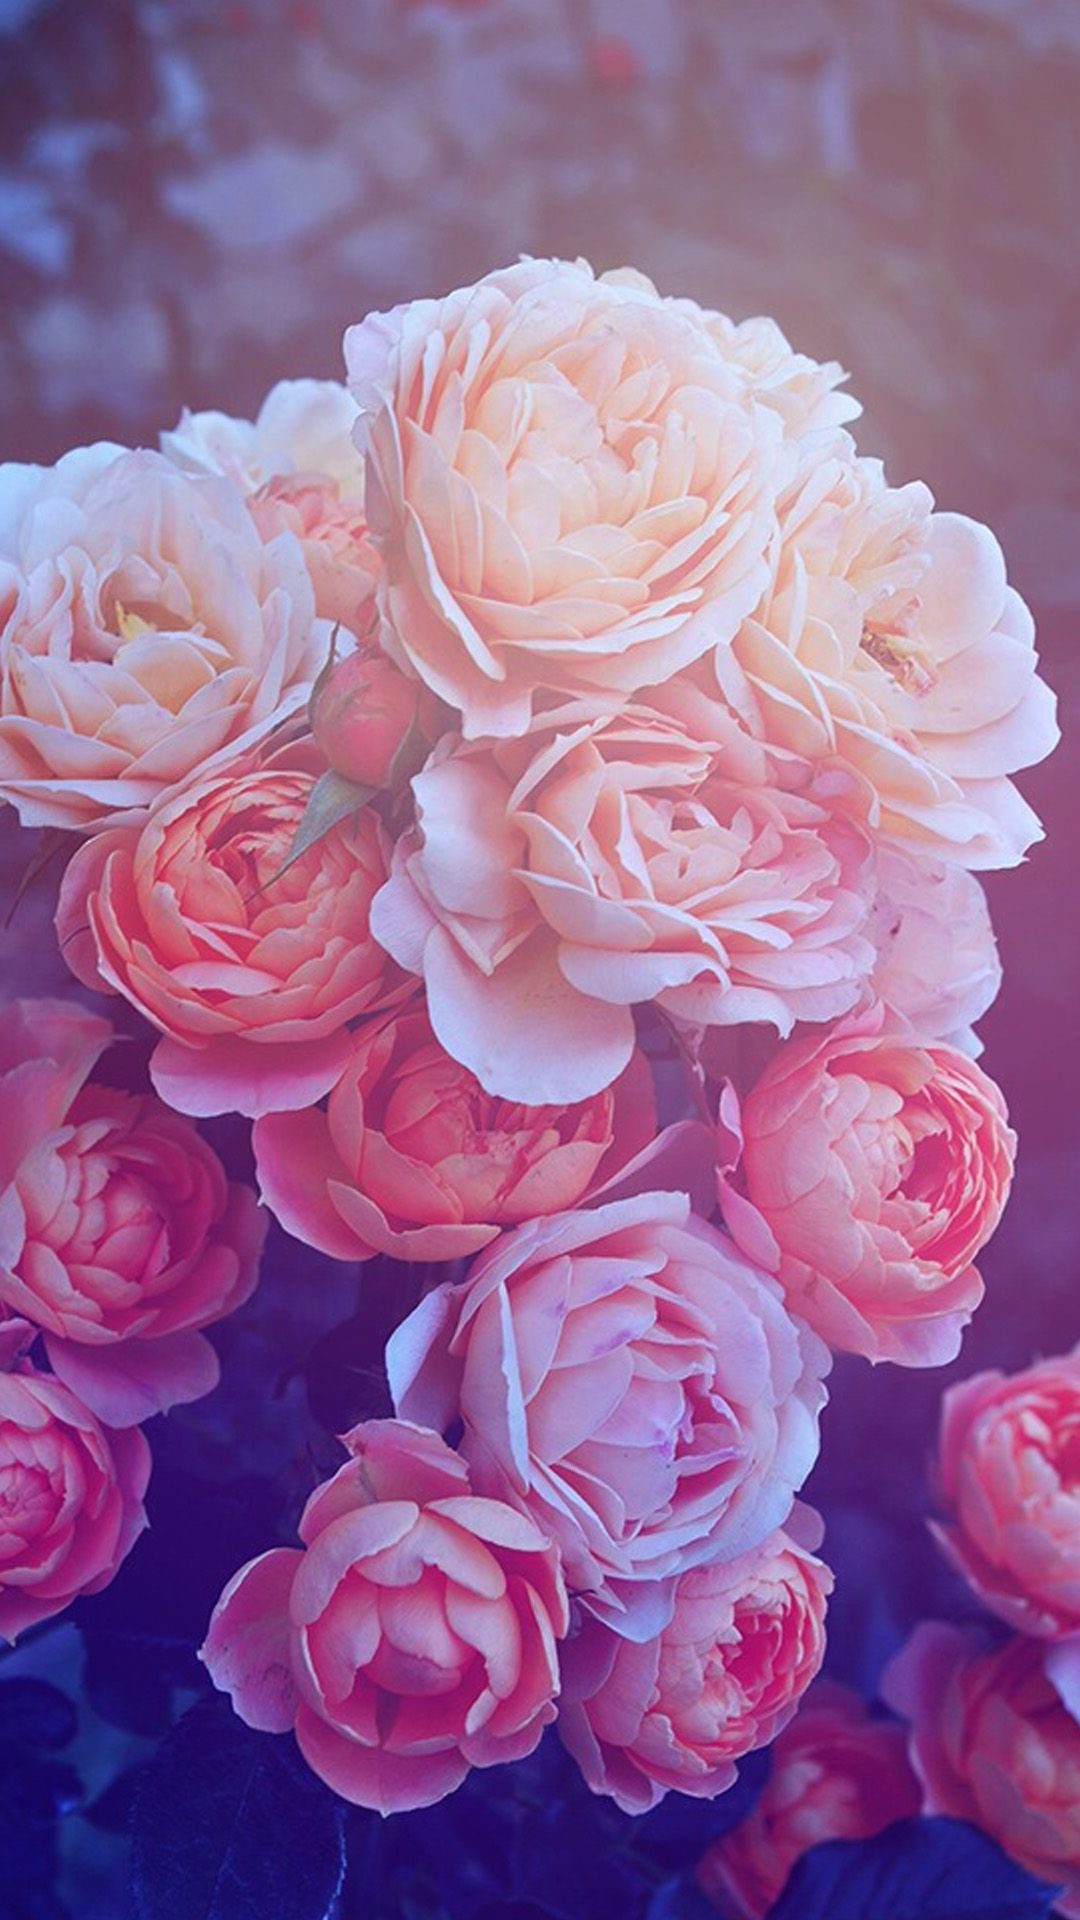 Res: 1080x1920, Pink Galaxy Iphone Wallpaper Beautiful pink roses hd wallpaper iphone 6  plus .